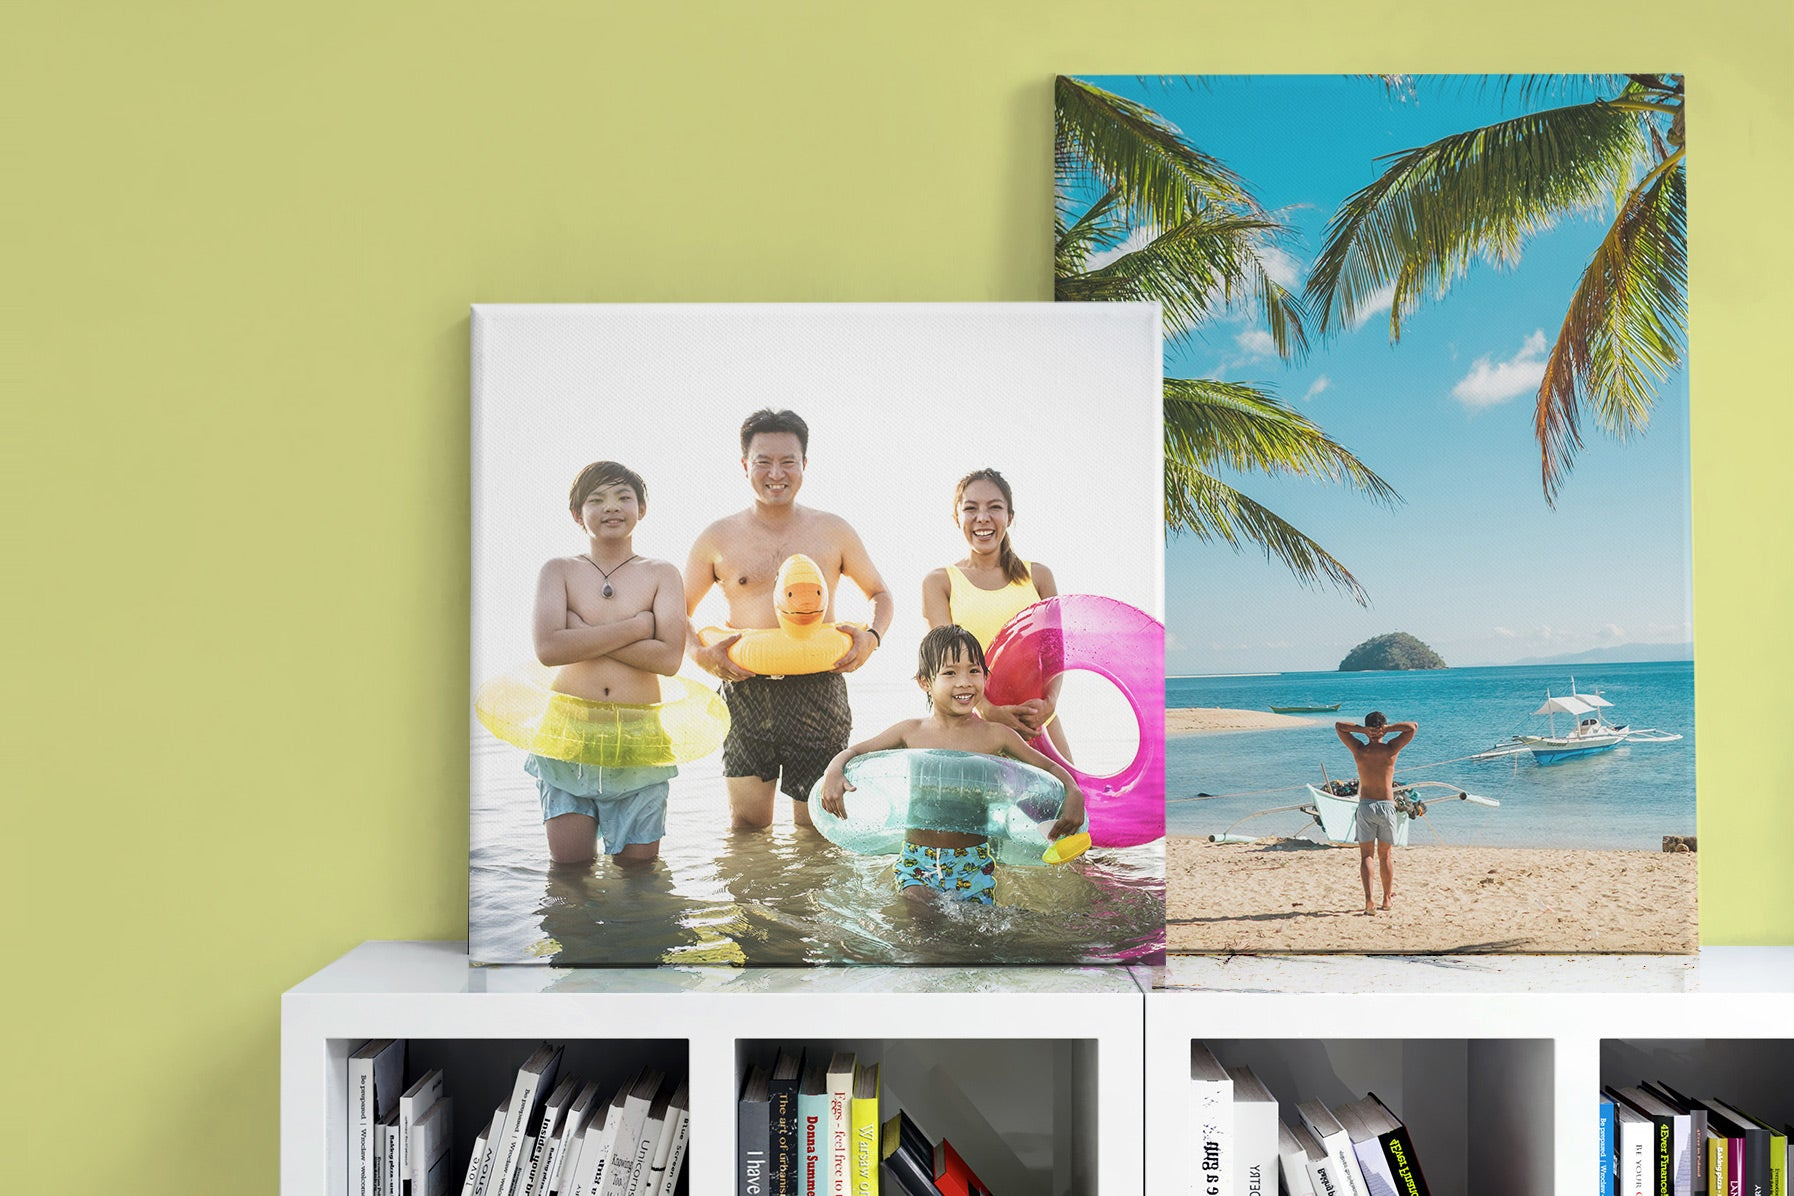 Canvas Photo Prints Displayed on Shelf